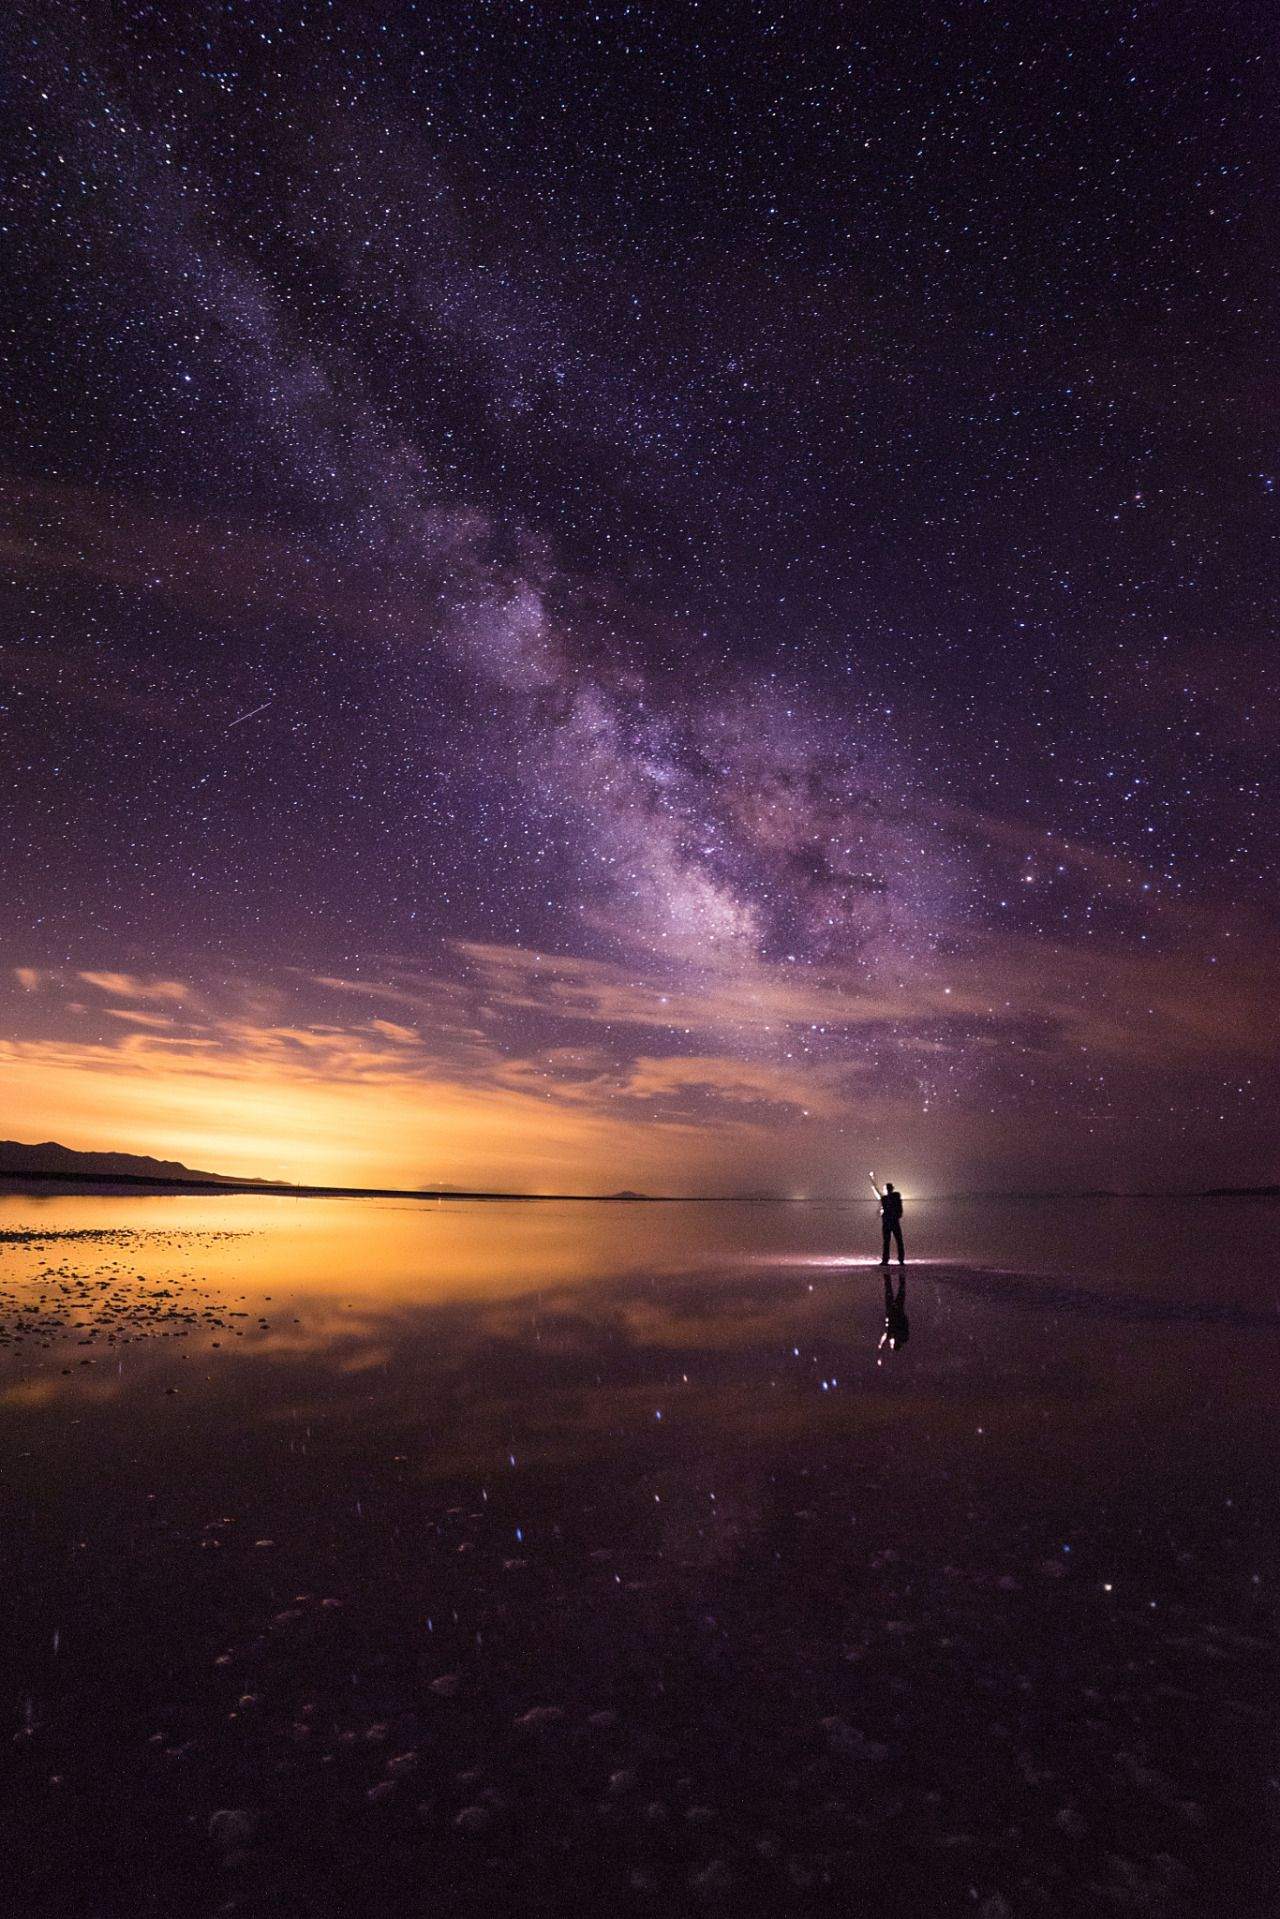 Milky way selfie at spiral jetty on 500px by prajit ravindran salt milky way selfie at spiral jetty on by prajit ravindran salt lake city usa publicscrutiny Choice Image